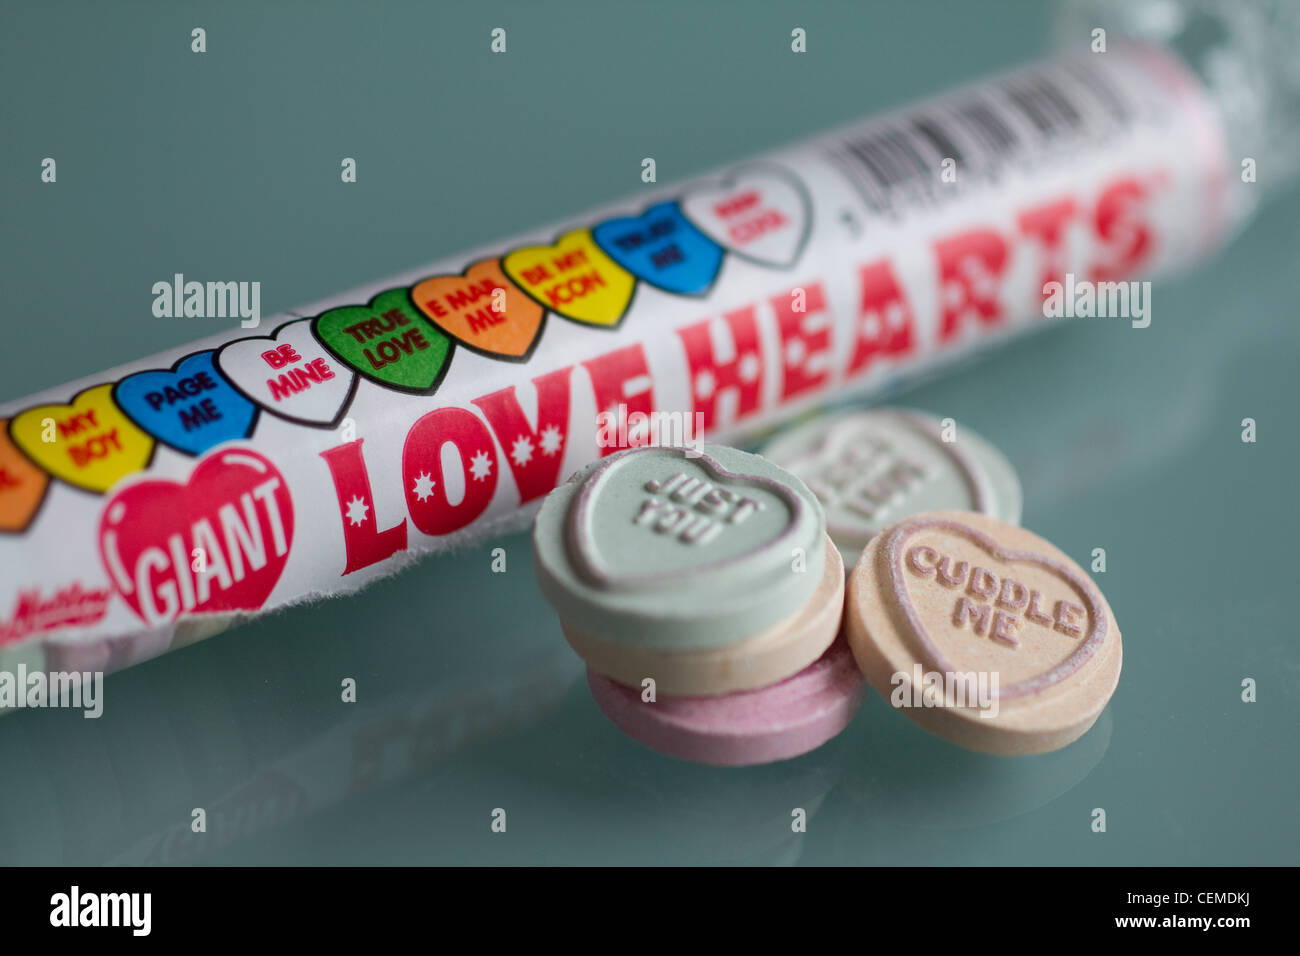 Swizzels Matlow coeurs Amour, bonbons candy wrapper Photo Stock